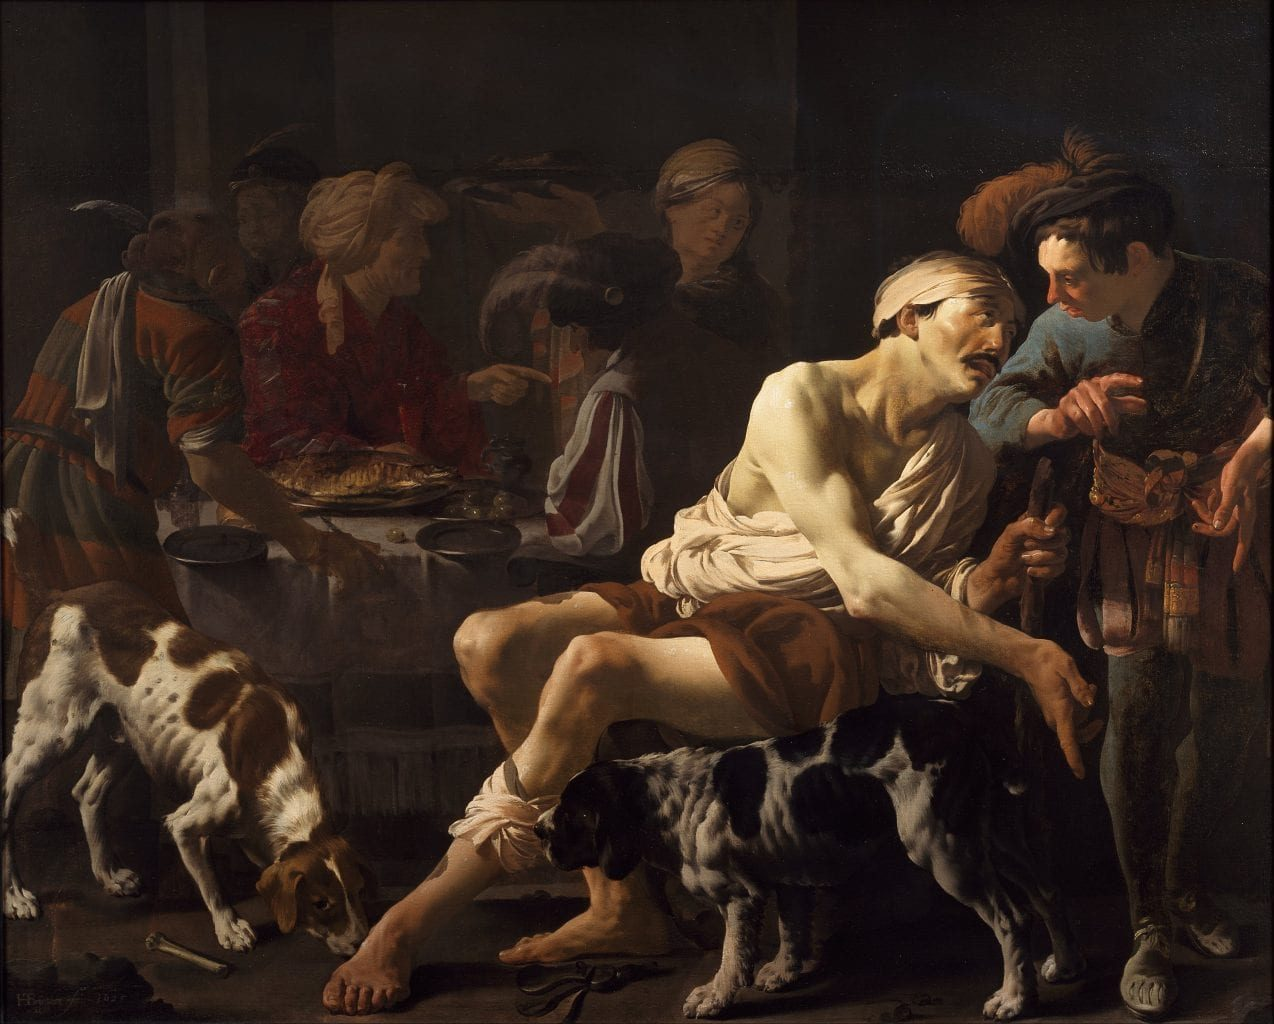 Dives, the Rich Man and Lazarus, the Beggar - Dr. Marcellino D'Ambrosio - Rich man and Lazarus